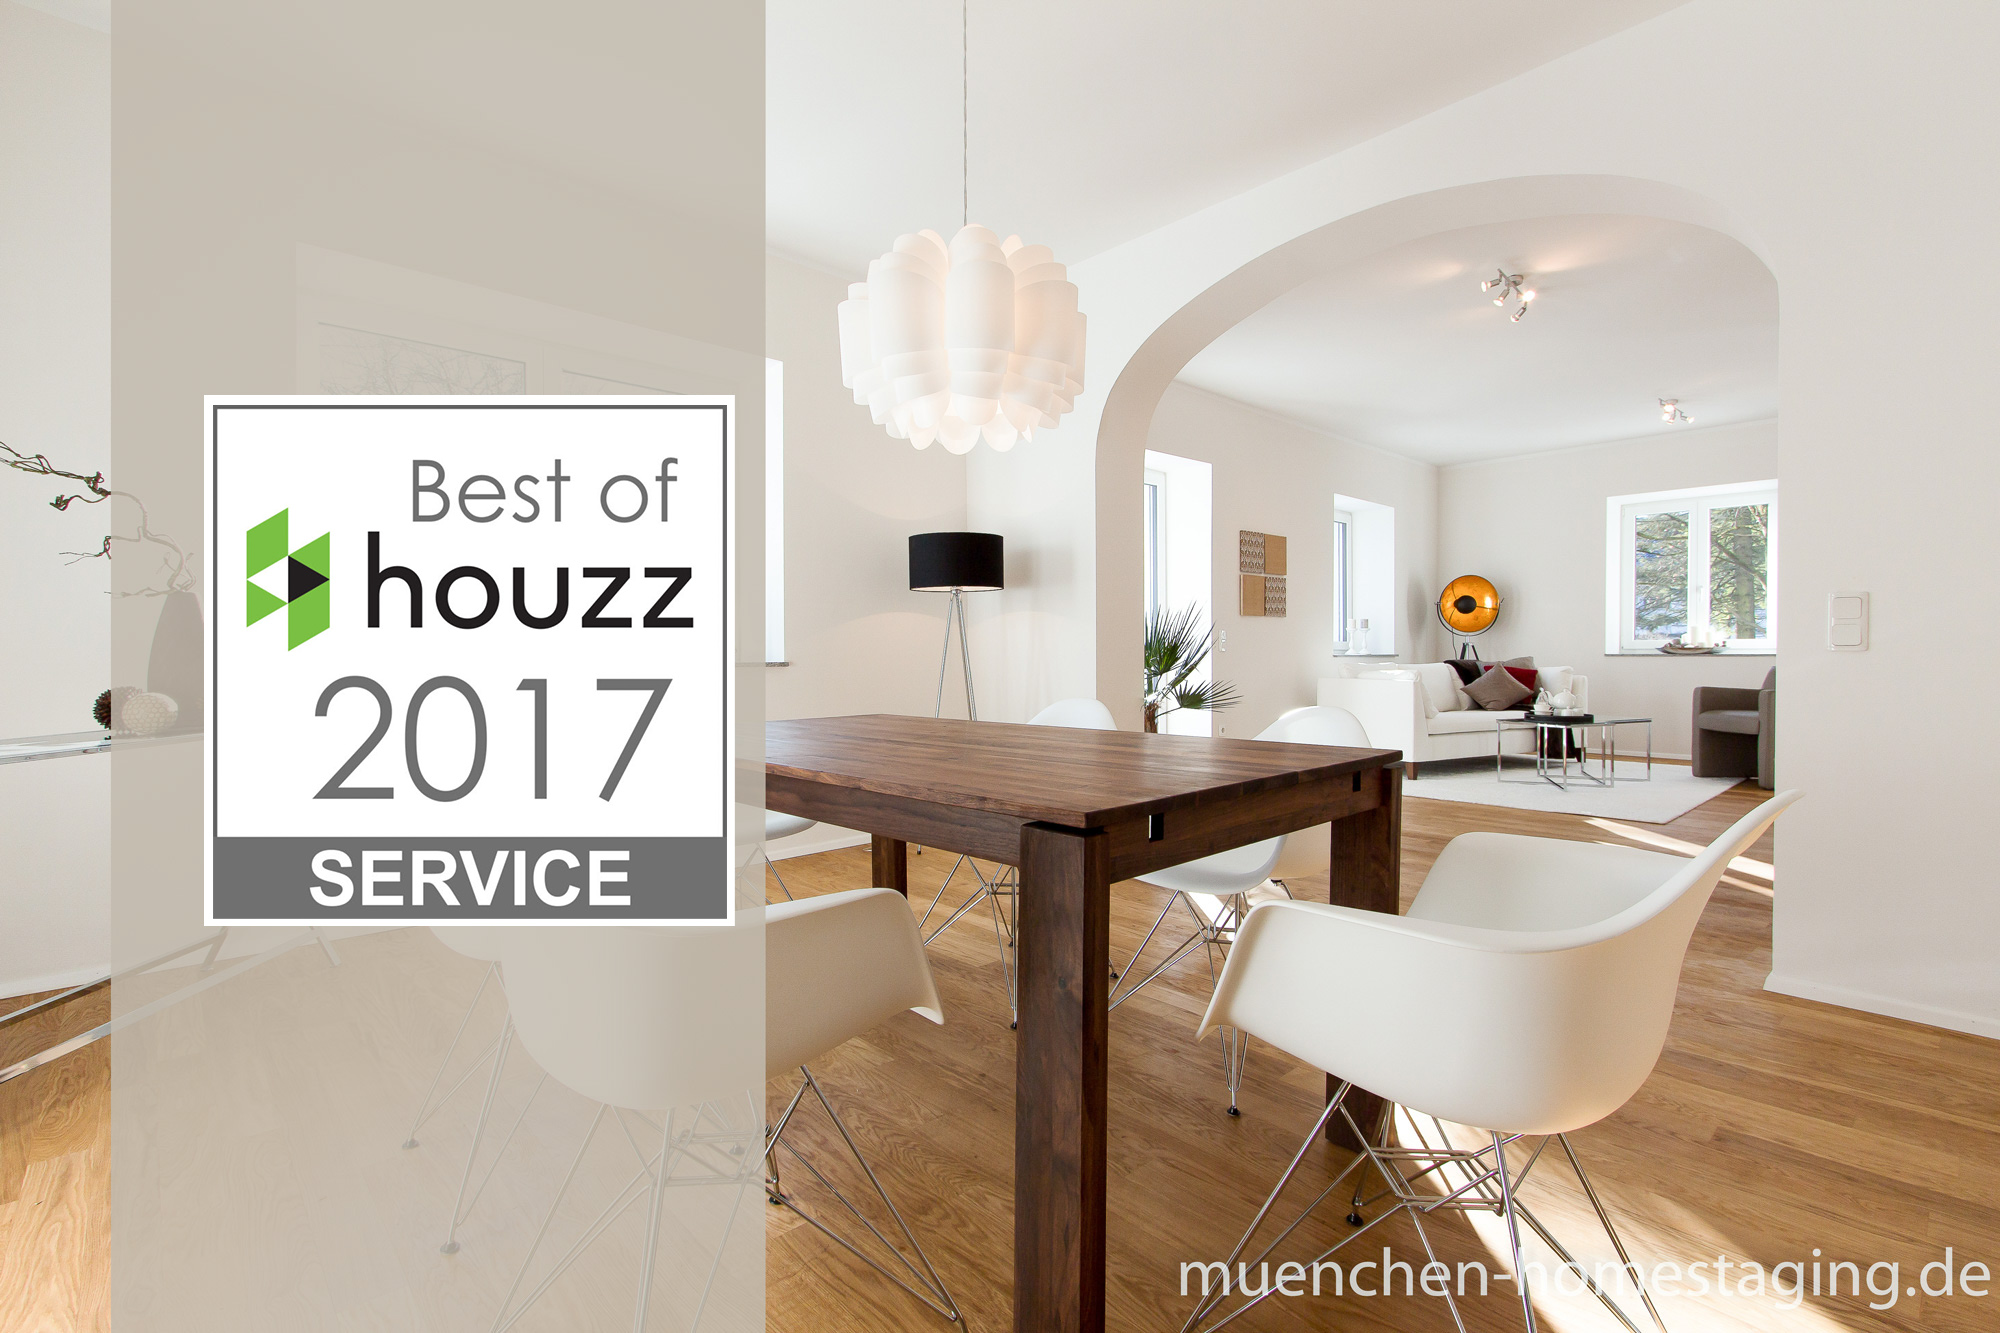 Muenchner Homestaging Agentur – Award